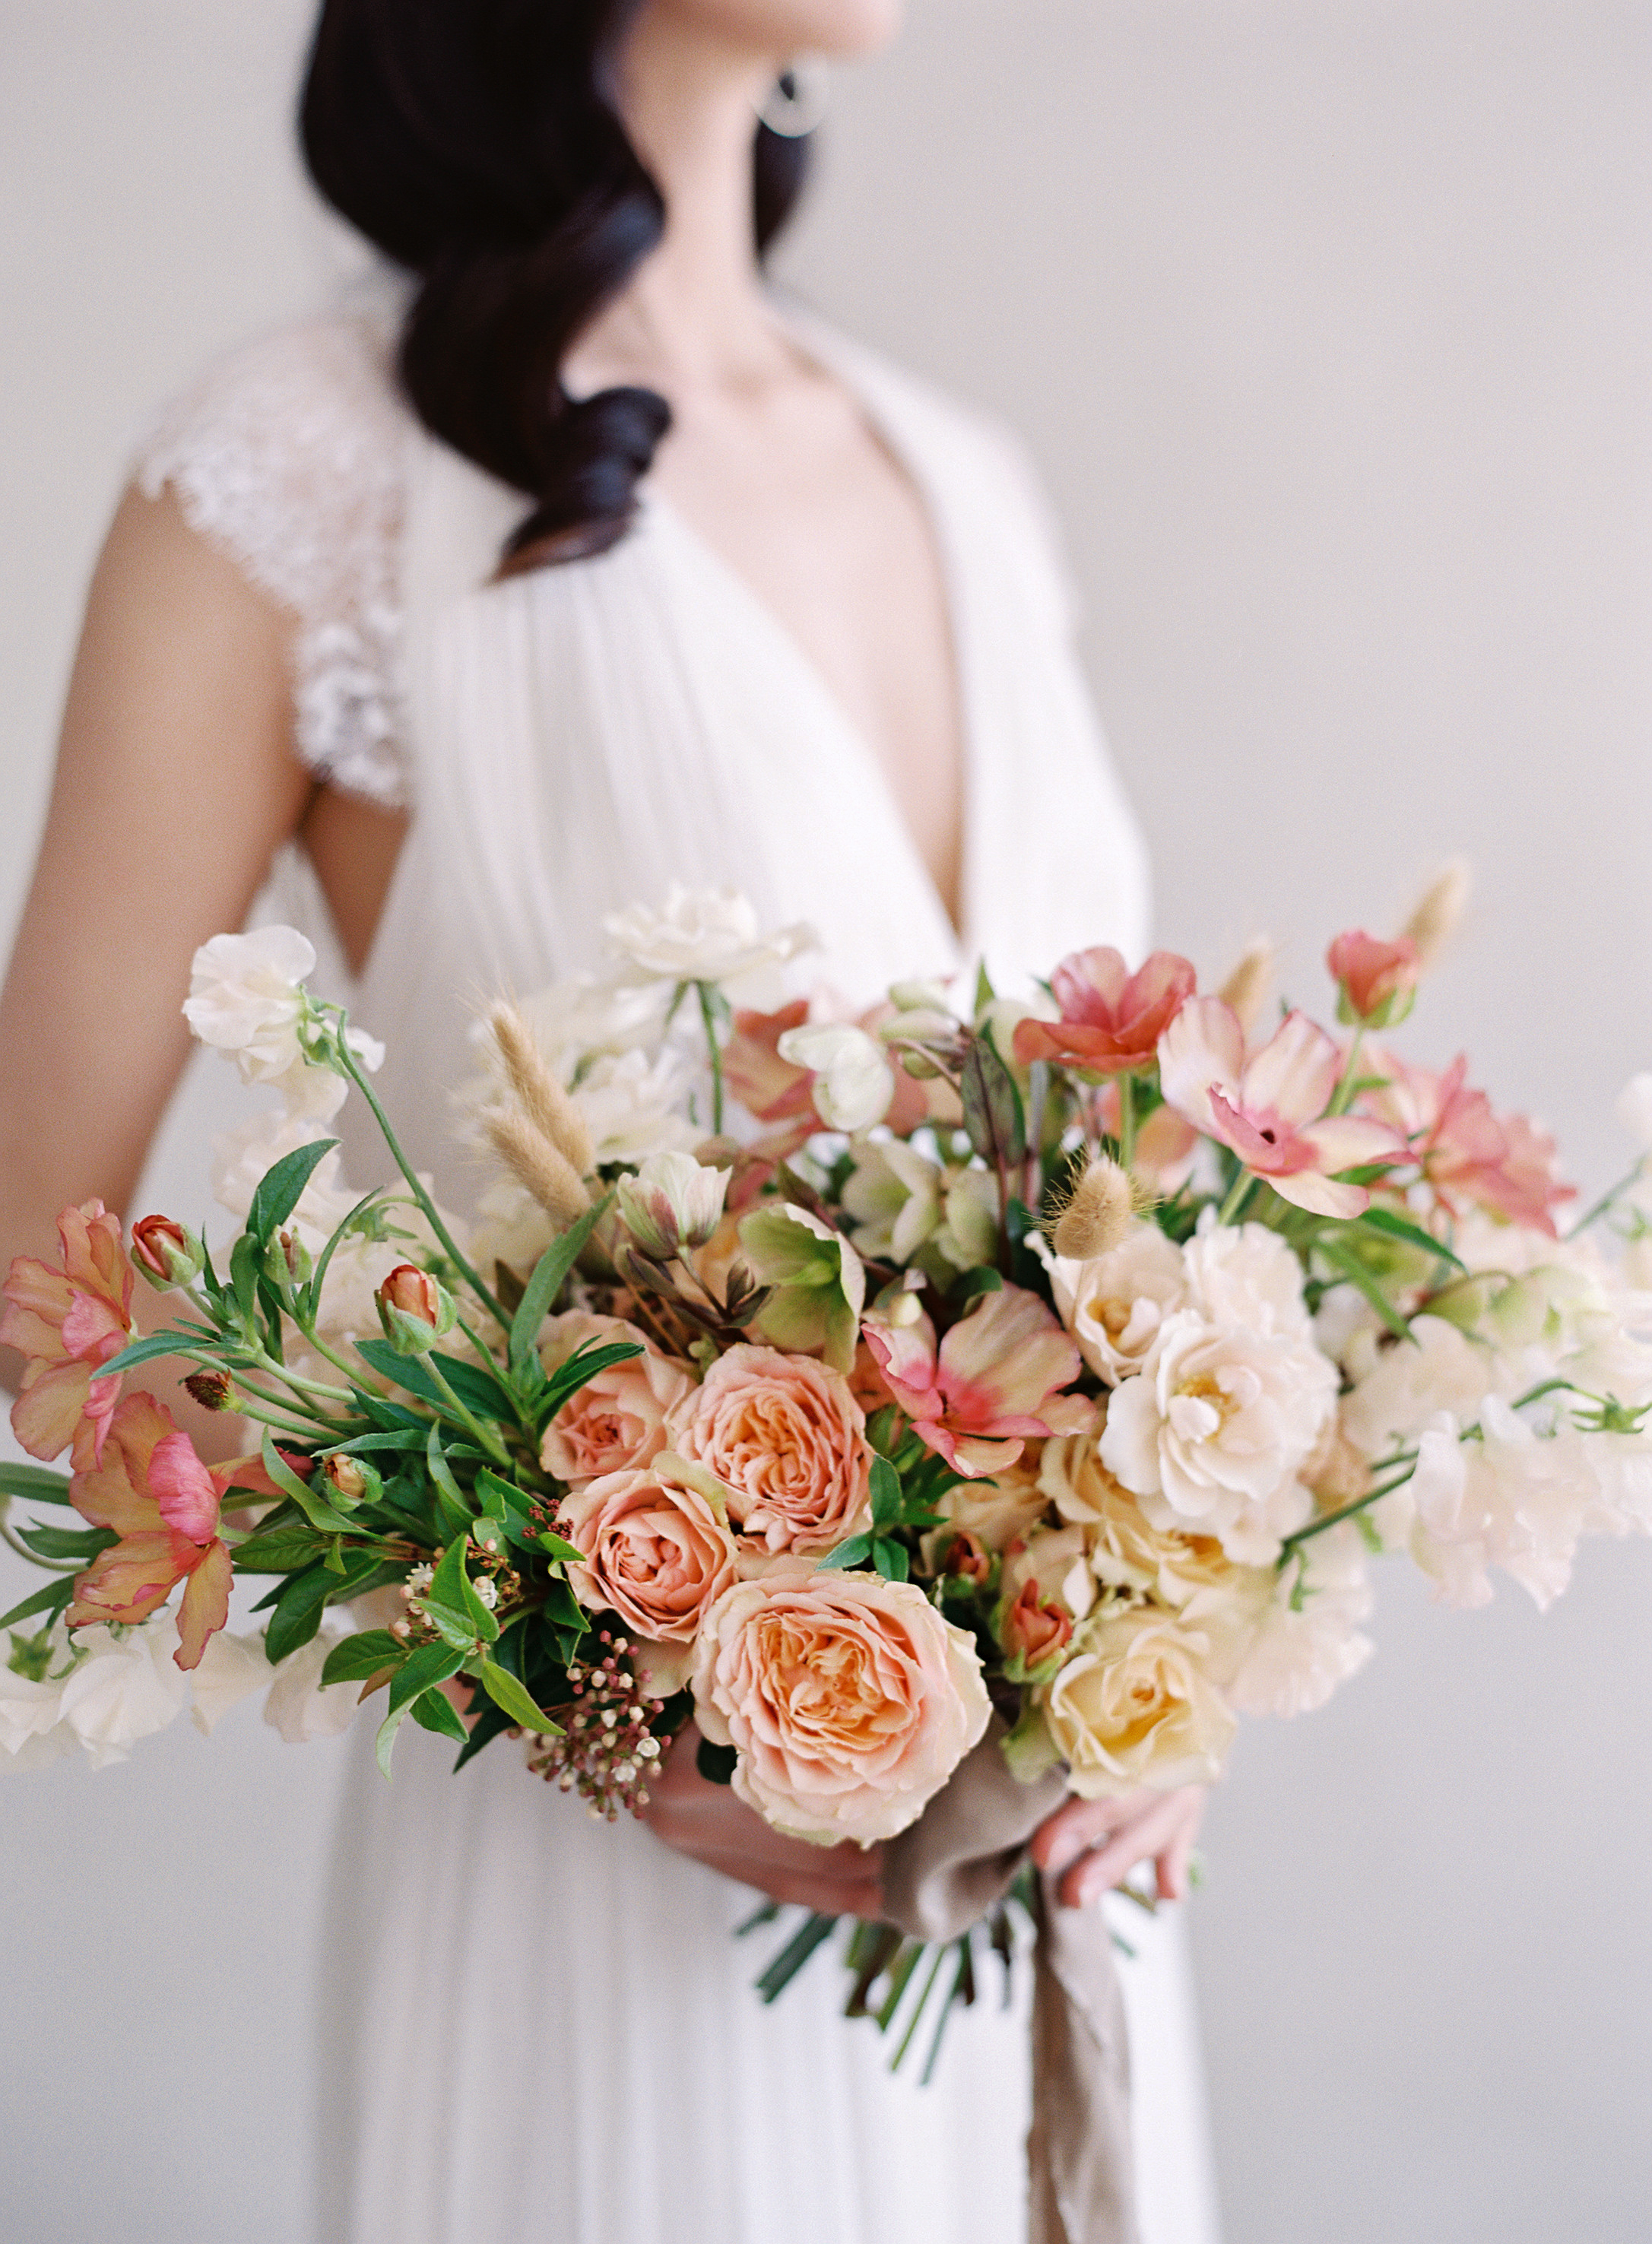 41-Floral_by_Ellamah-Photo_by_Christine_Donee-Gown_by_Catherine_Deane.jpg